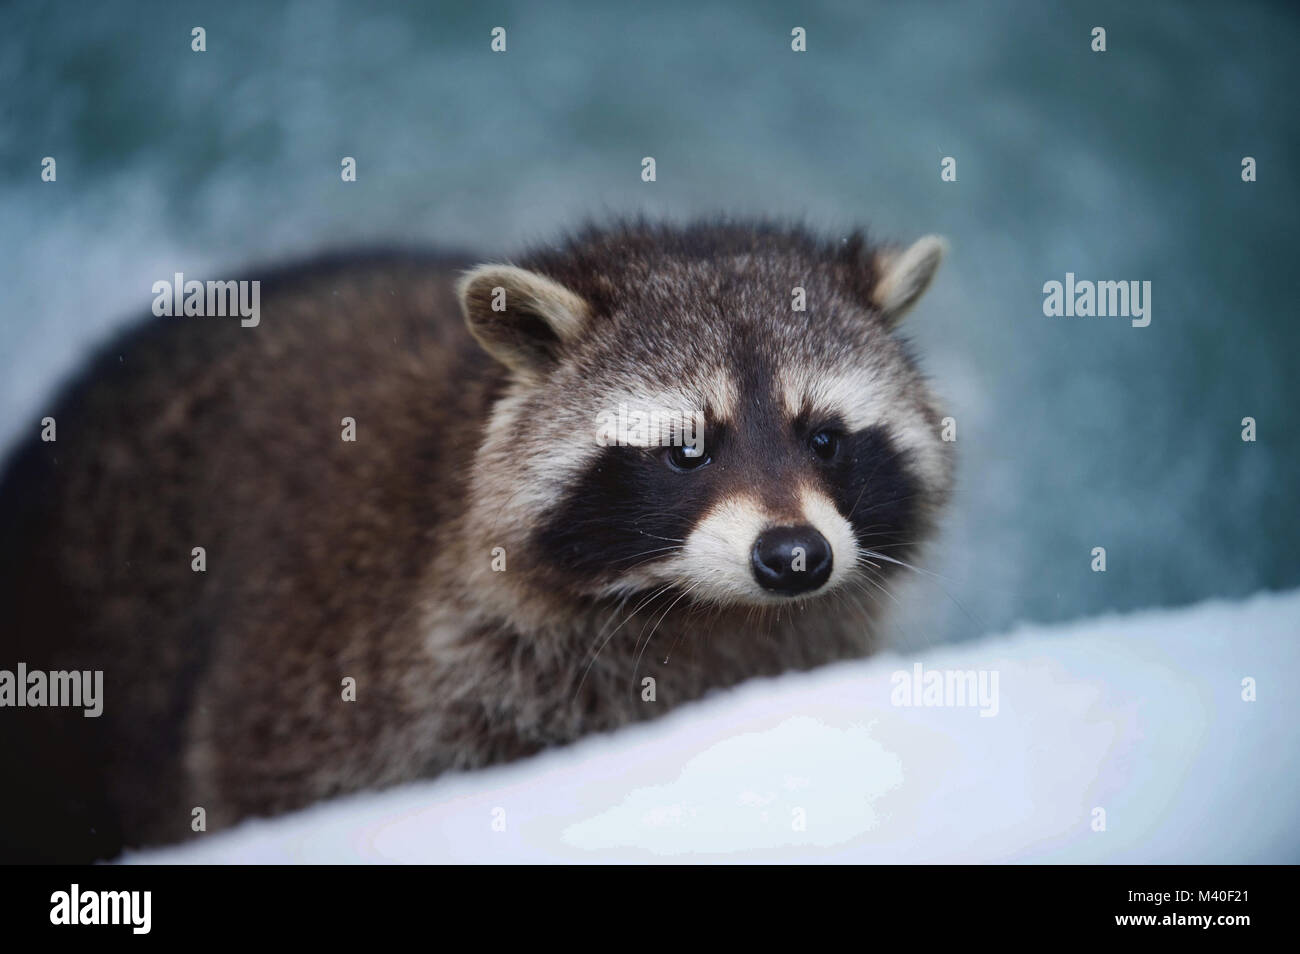 Portrait of Racoon. Low depth of field, Sharp Eyes, Blurred Blue Background. - Stock Image